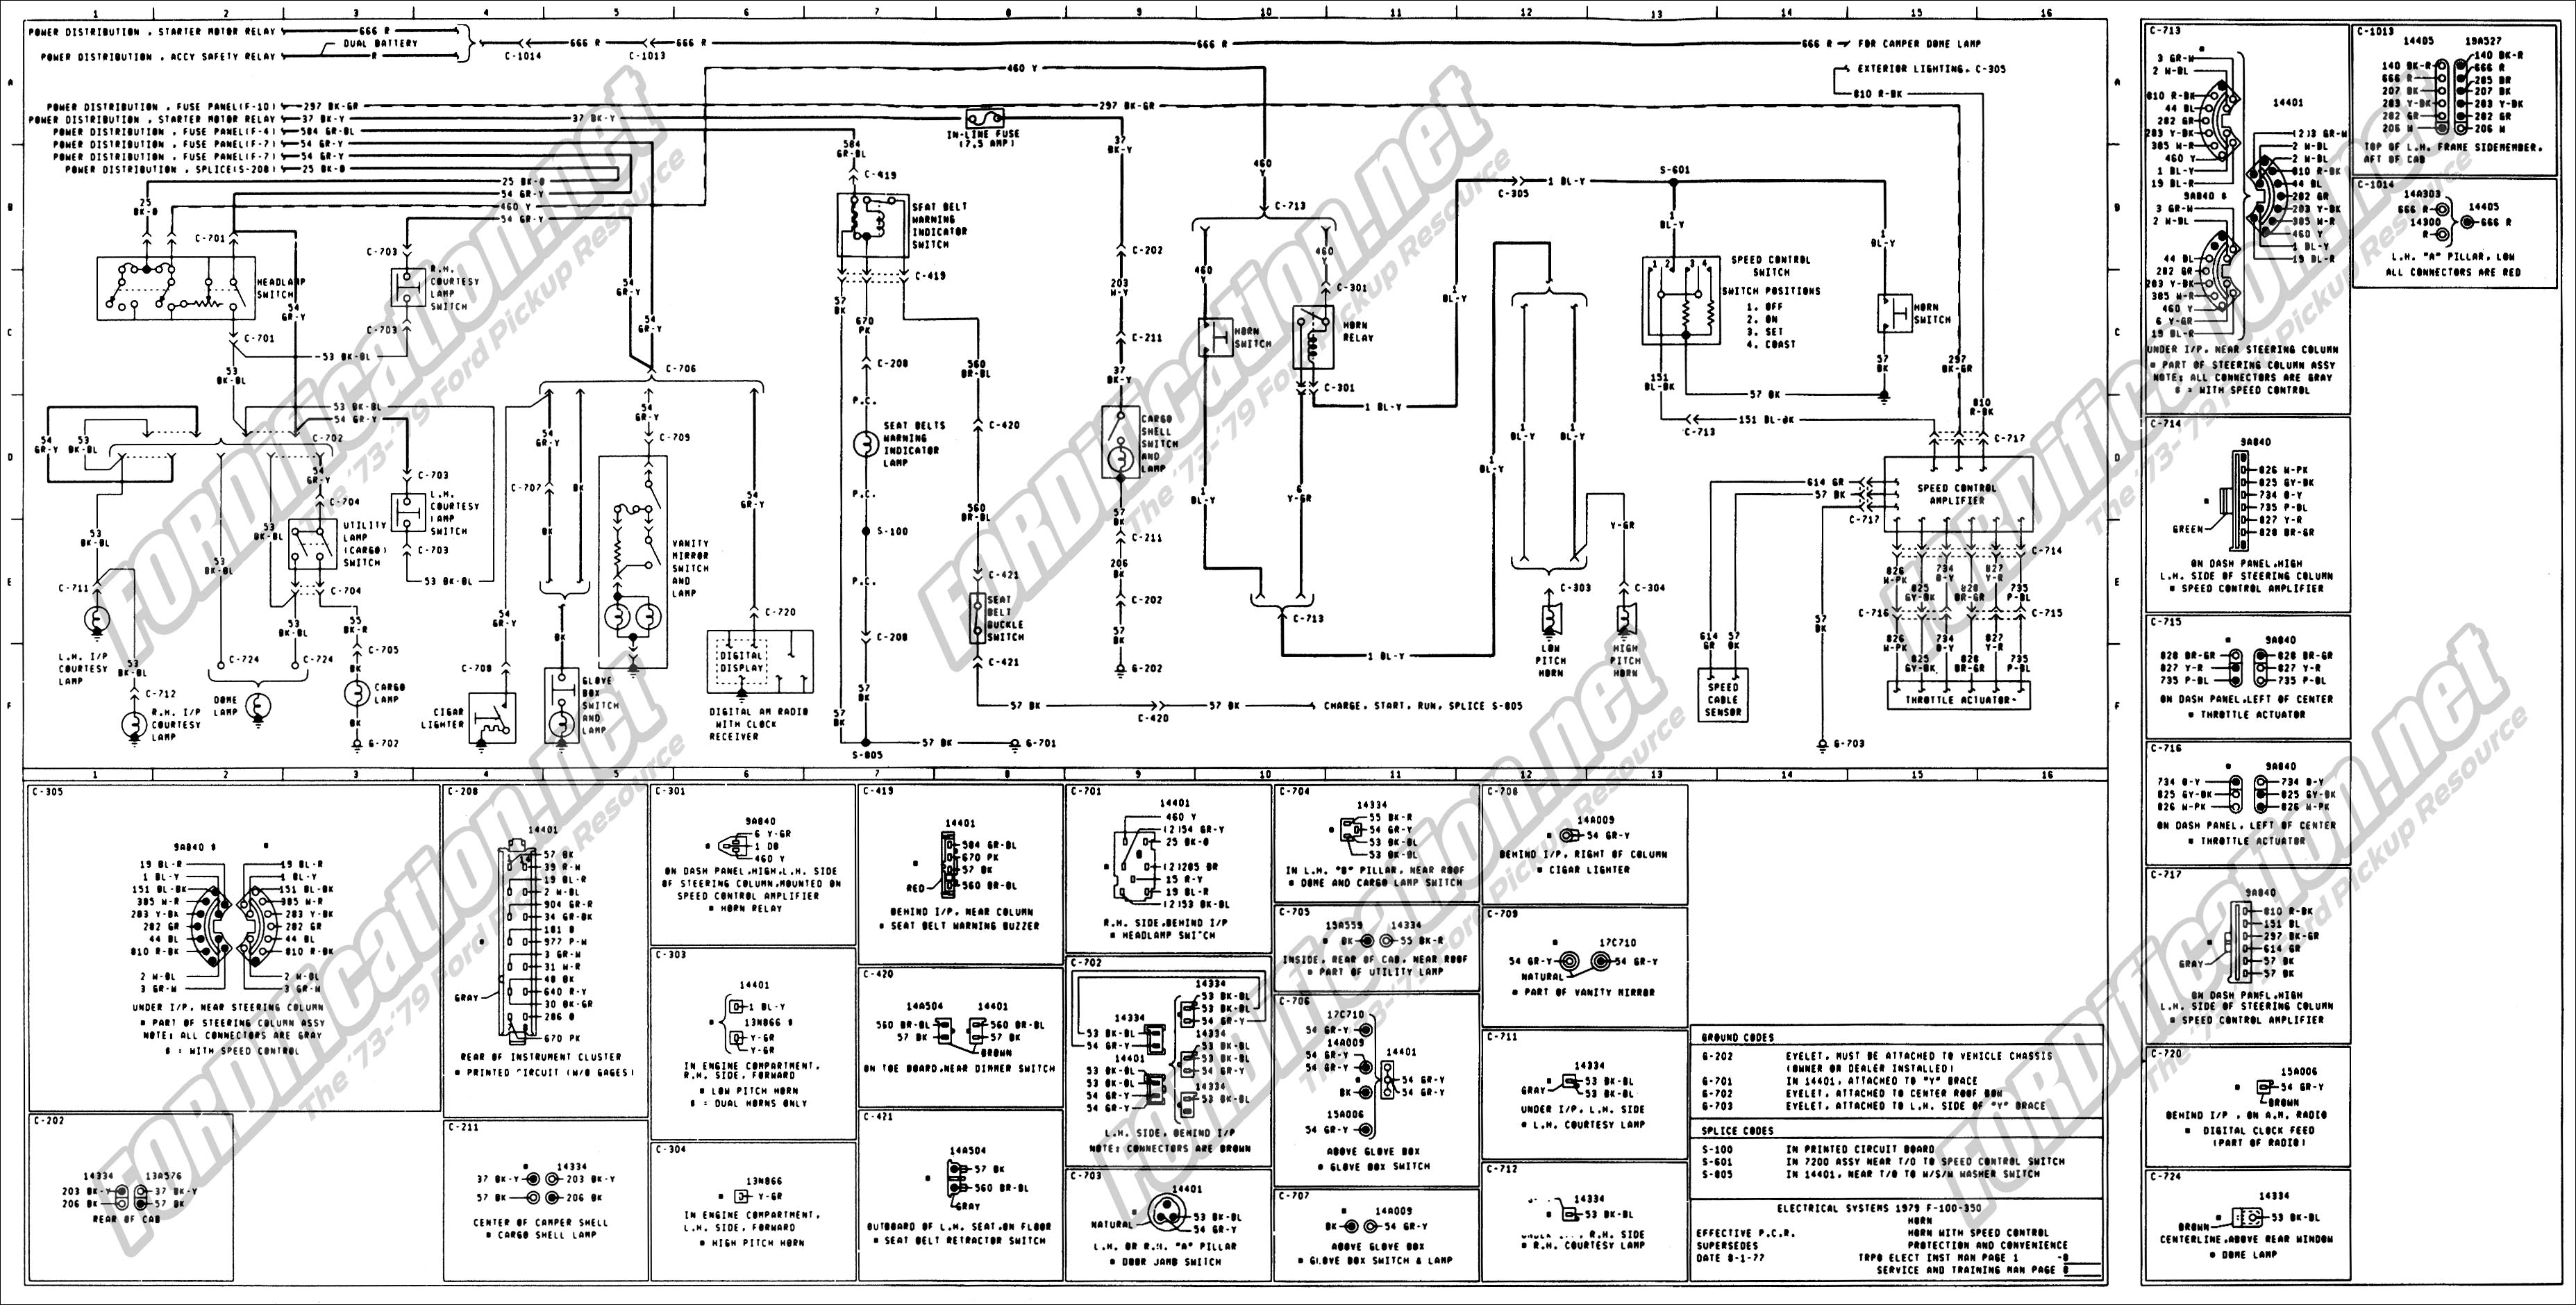 1985 ford f 350 truck wiring diagrams wiring library 2003 ford f250 fuse box diagram 2012 ford f 350 wiring diagram wiring